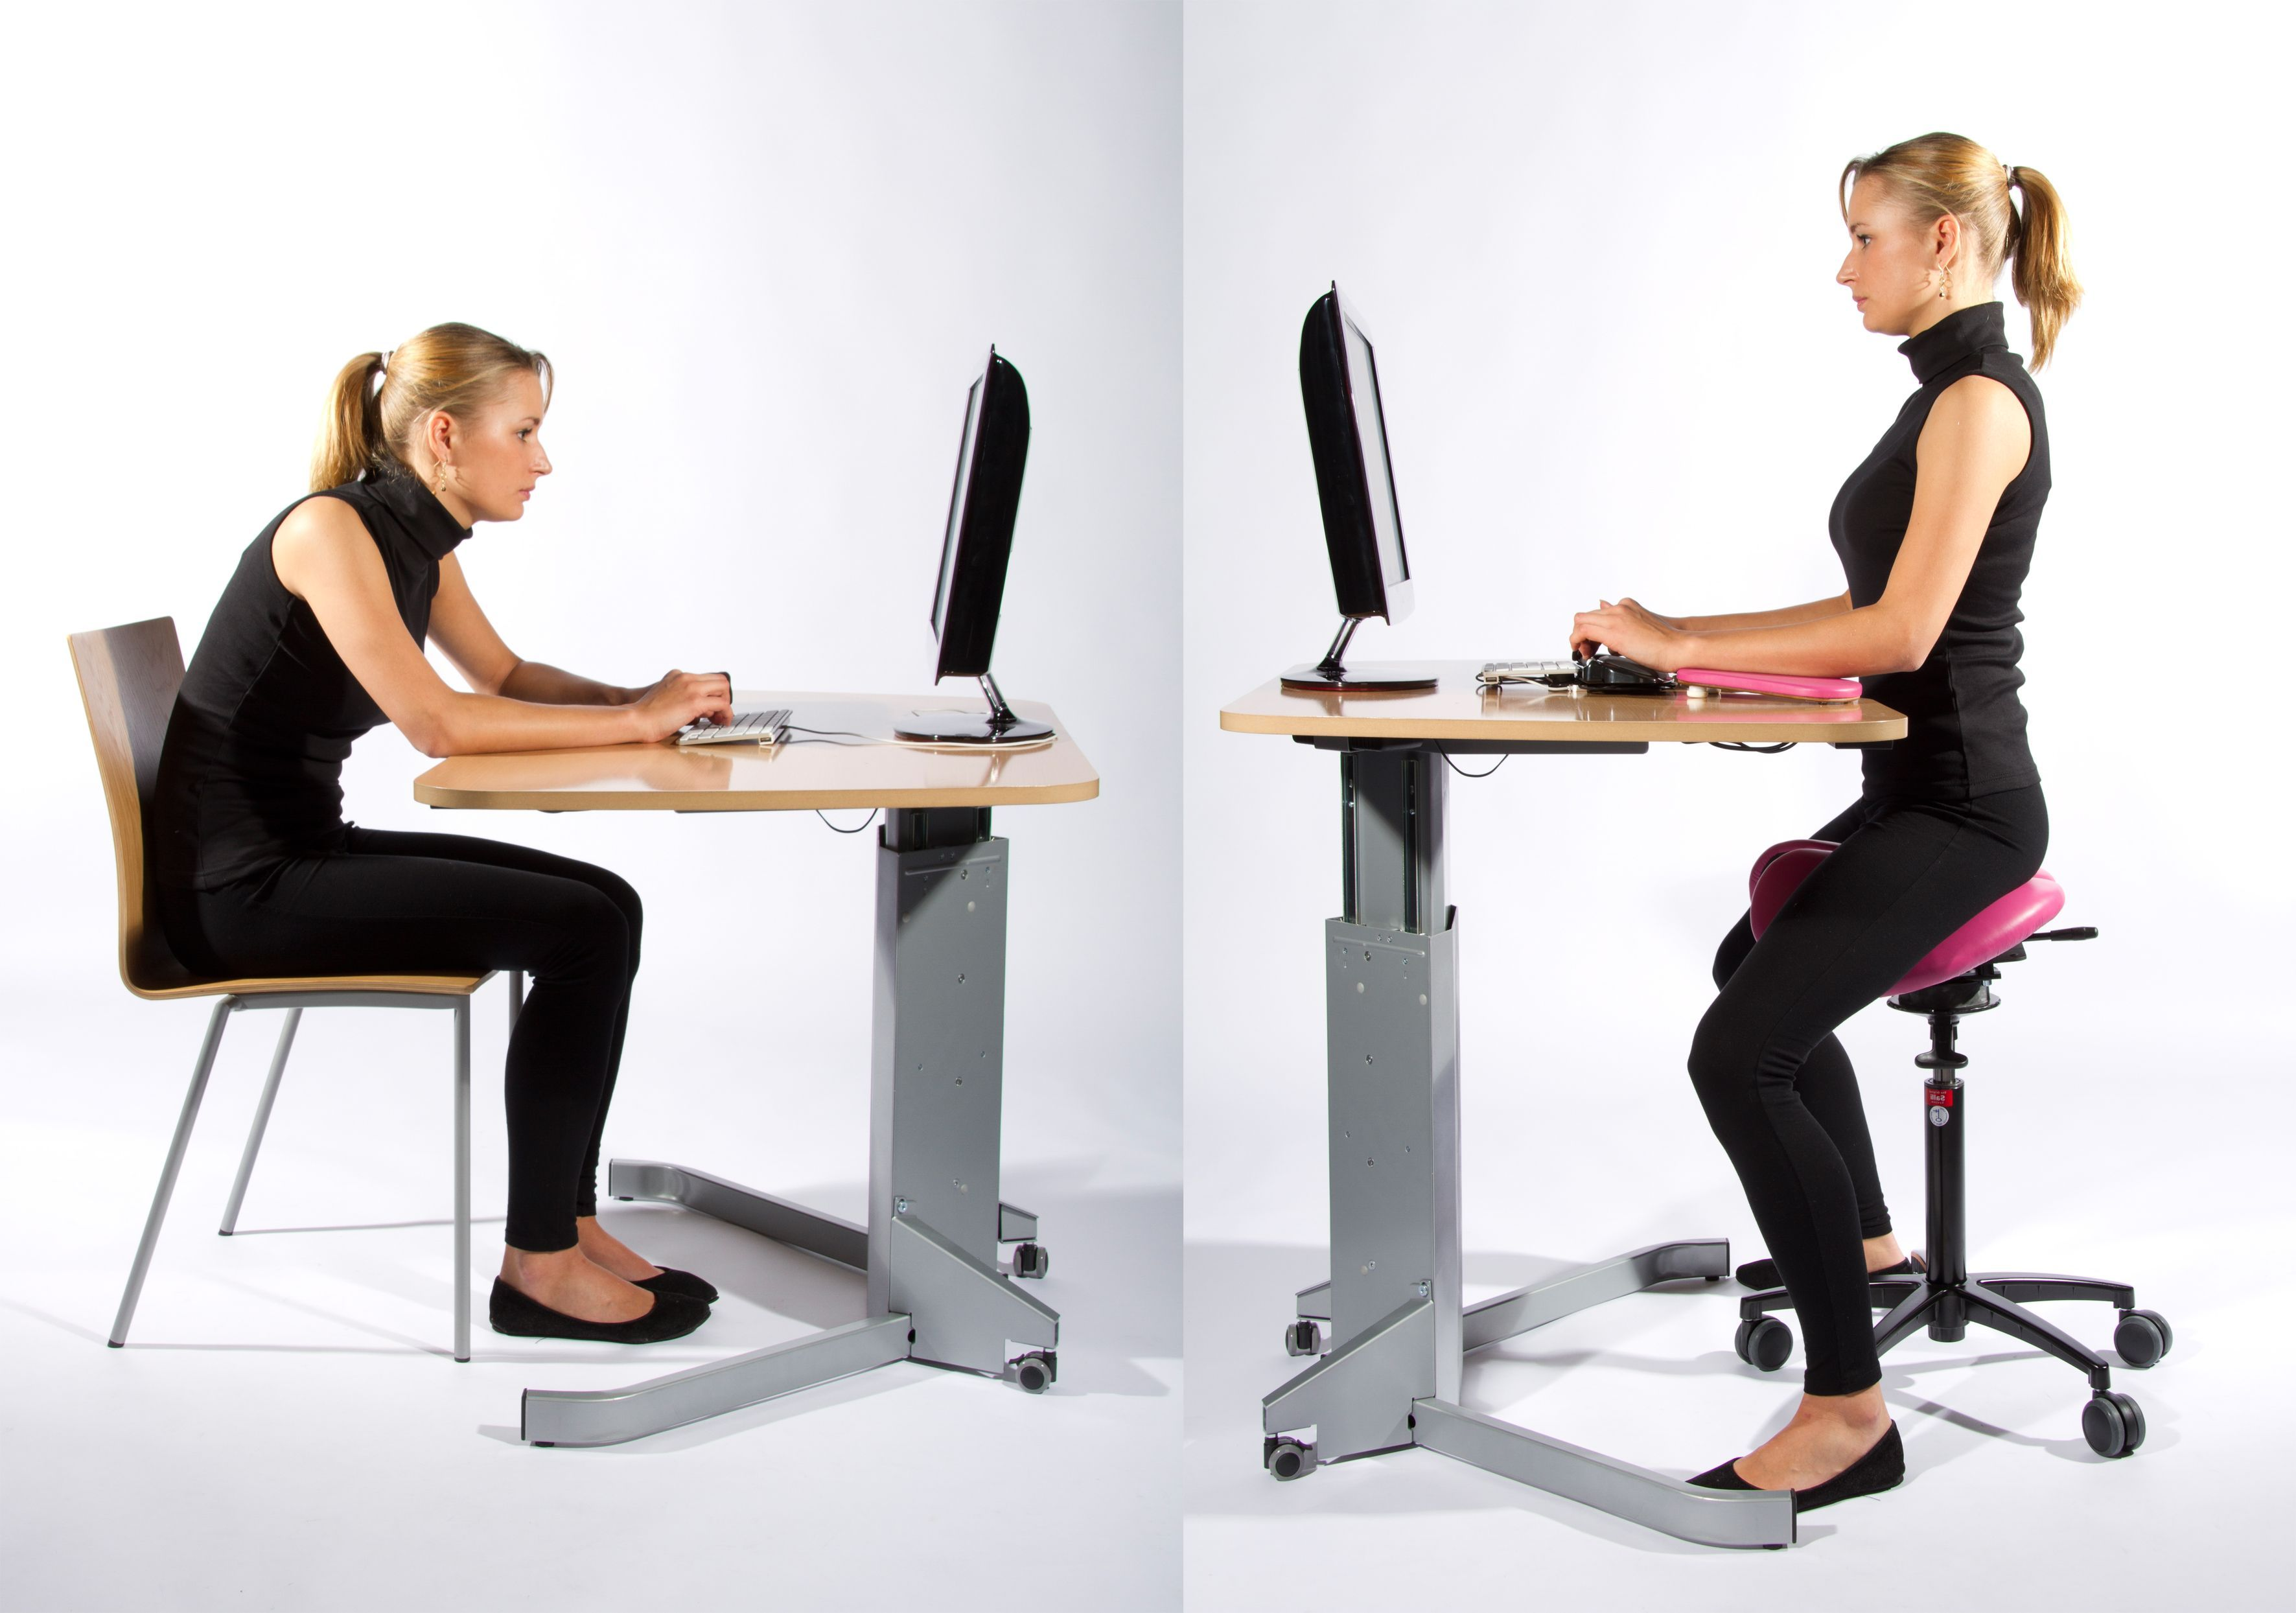 Reasons Why Office Desk Exercise Equipment Is Not A Good Workout